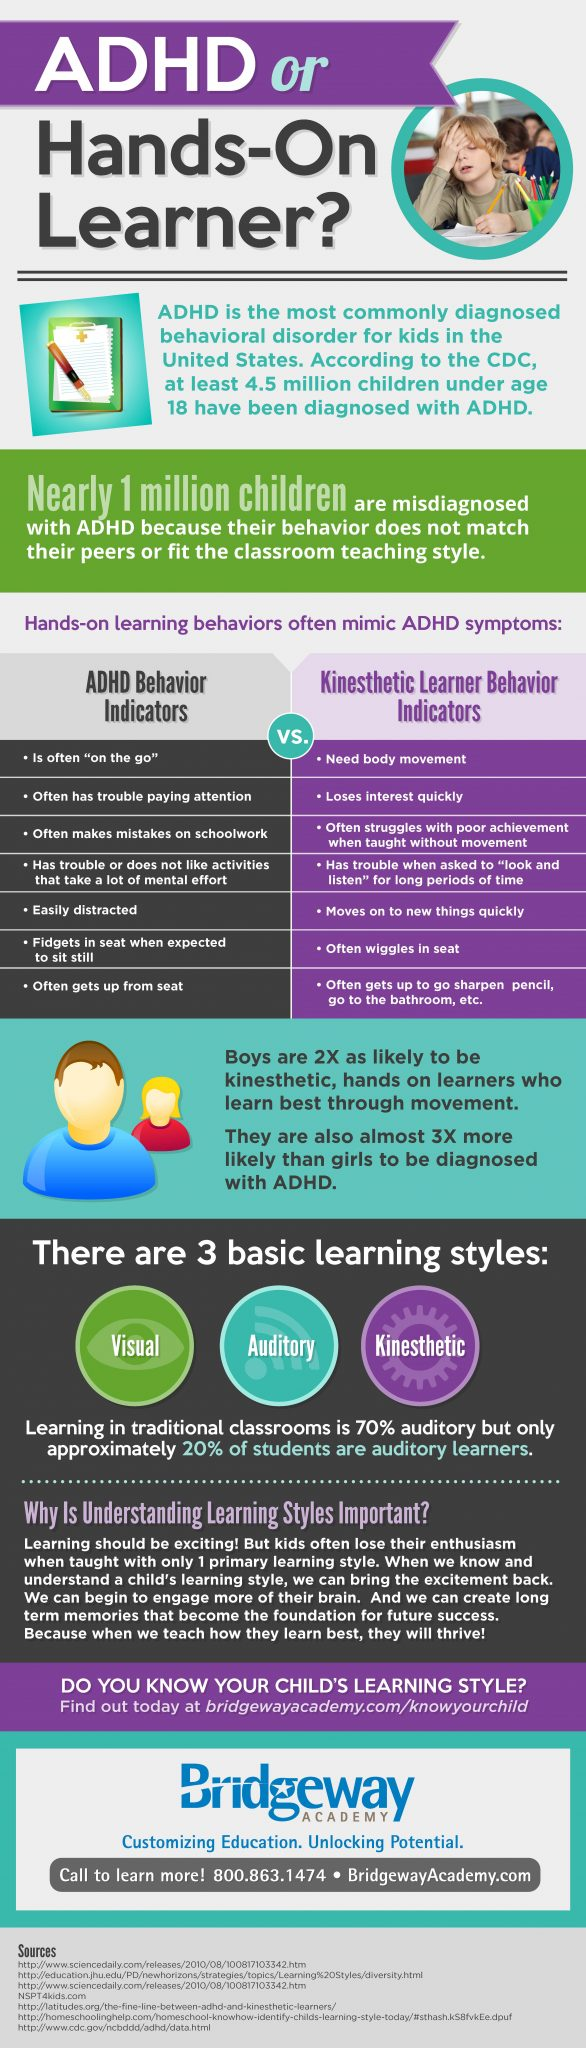 ADHD or Kinesthetic Learner